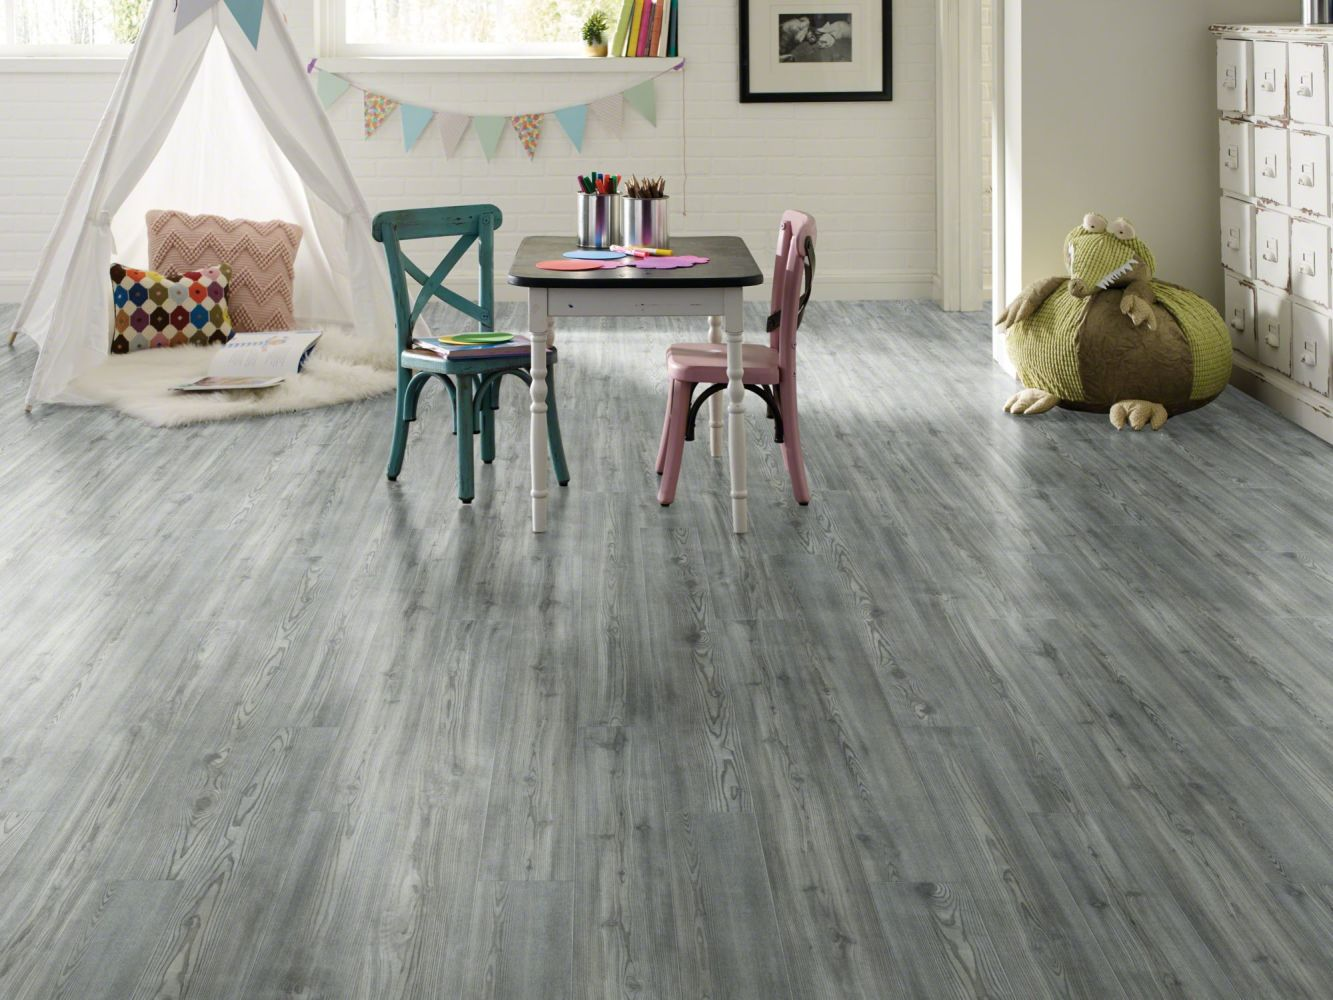 Shaw Floors Vinyl Residential Paragon 7″ Plus Fresh Pine 05052_1020V